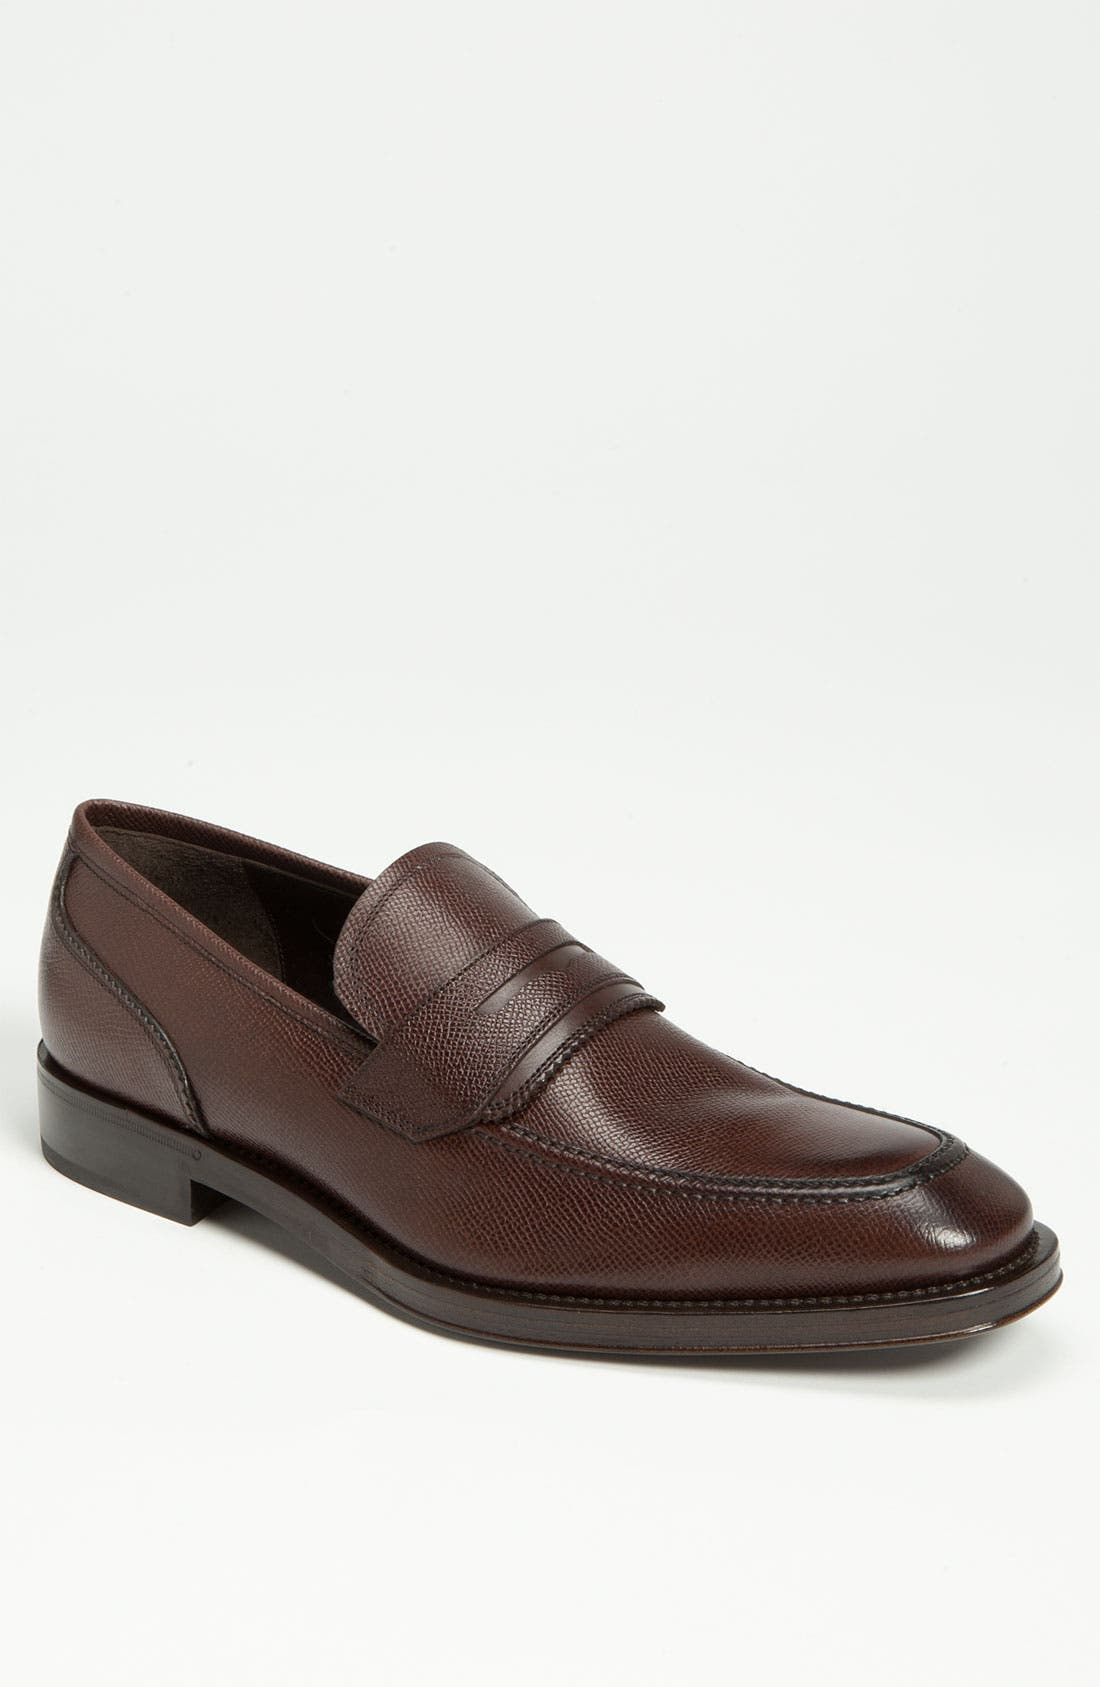 Alternate Image 1 Selected - Salvatore Ferragamo 'Atene' Loafer